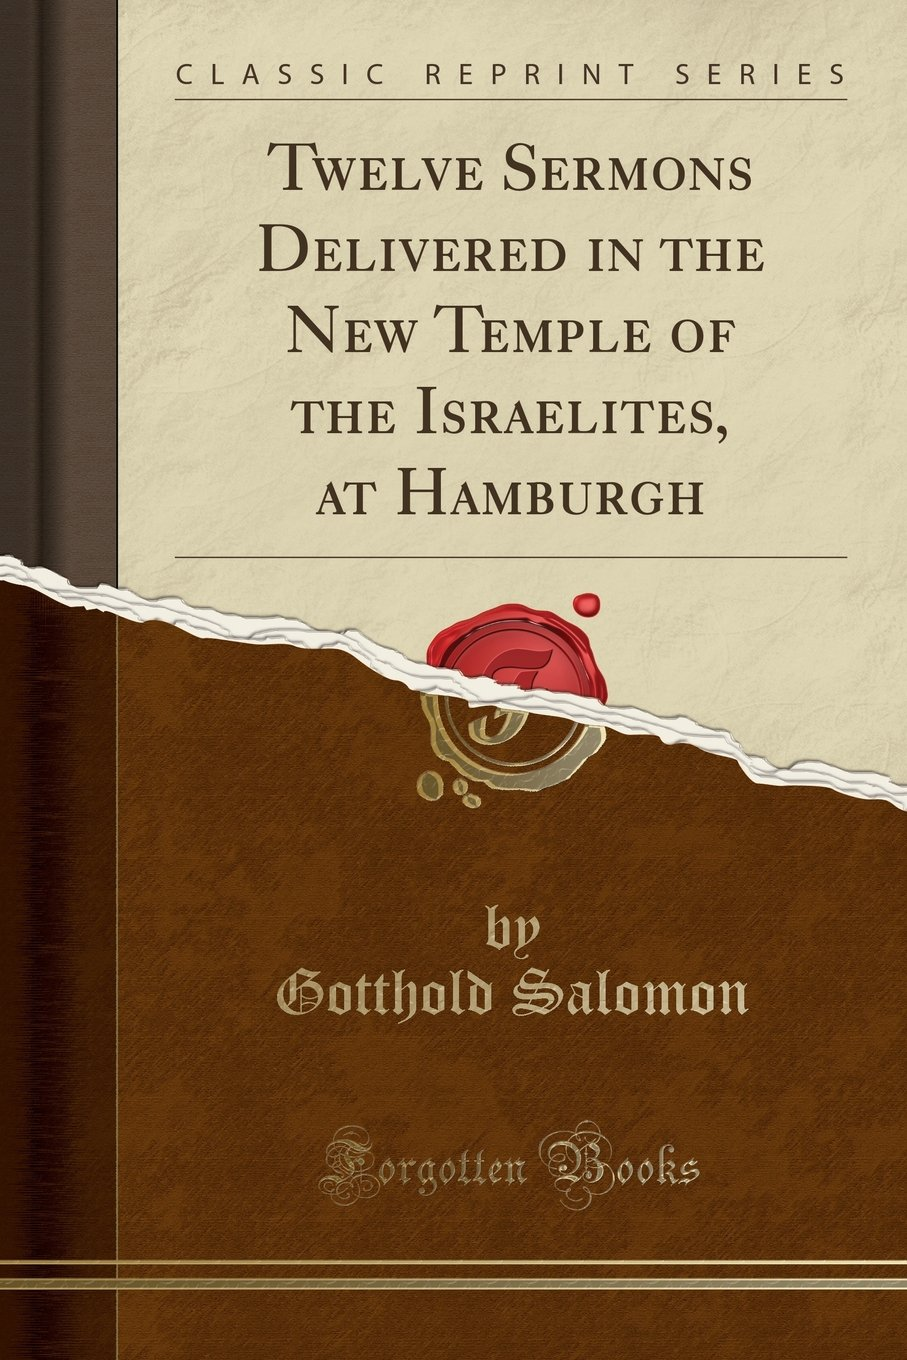 Read Online Twelve Sermons Delivered in the New Temple of the Israelites, at Hamburgh (Classic Reprint) PDF